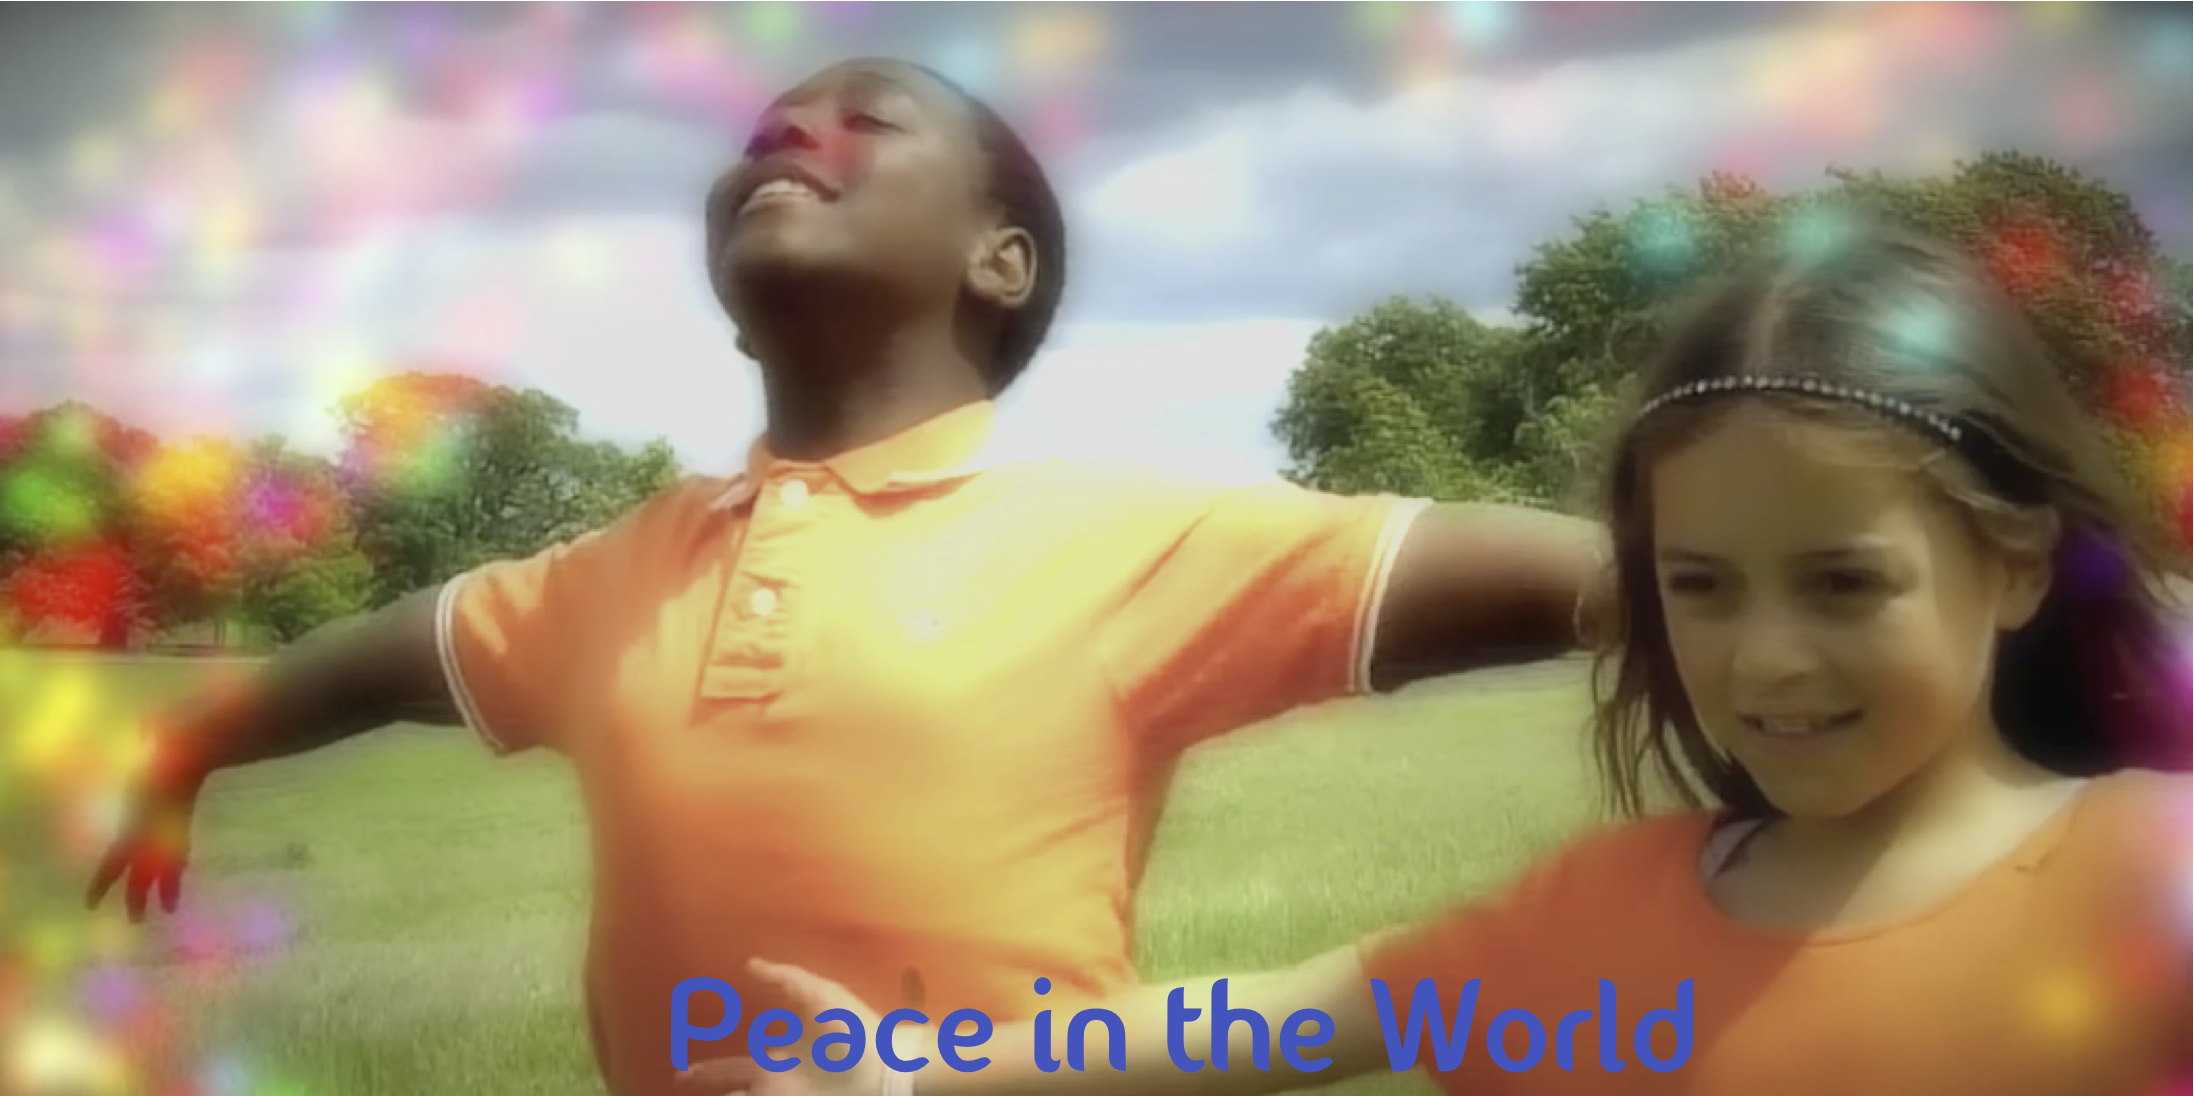 Filming the Peace Button Song